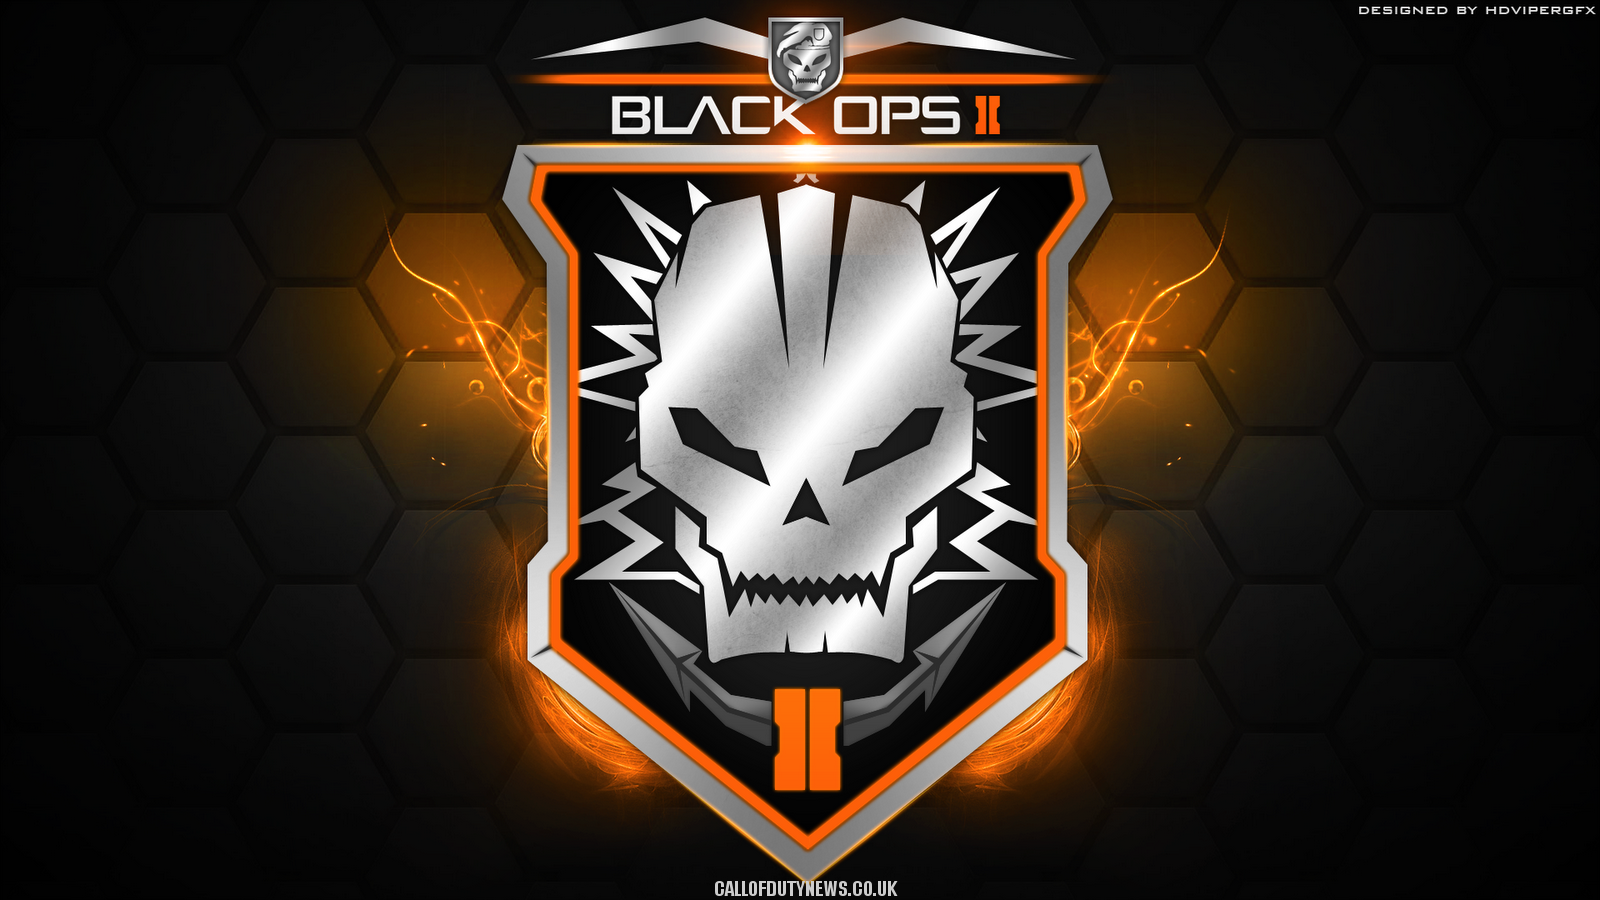 Call Of Duty Black Ops Ii Wallpapers Free Download ブラック